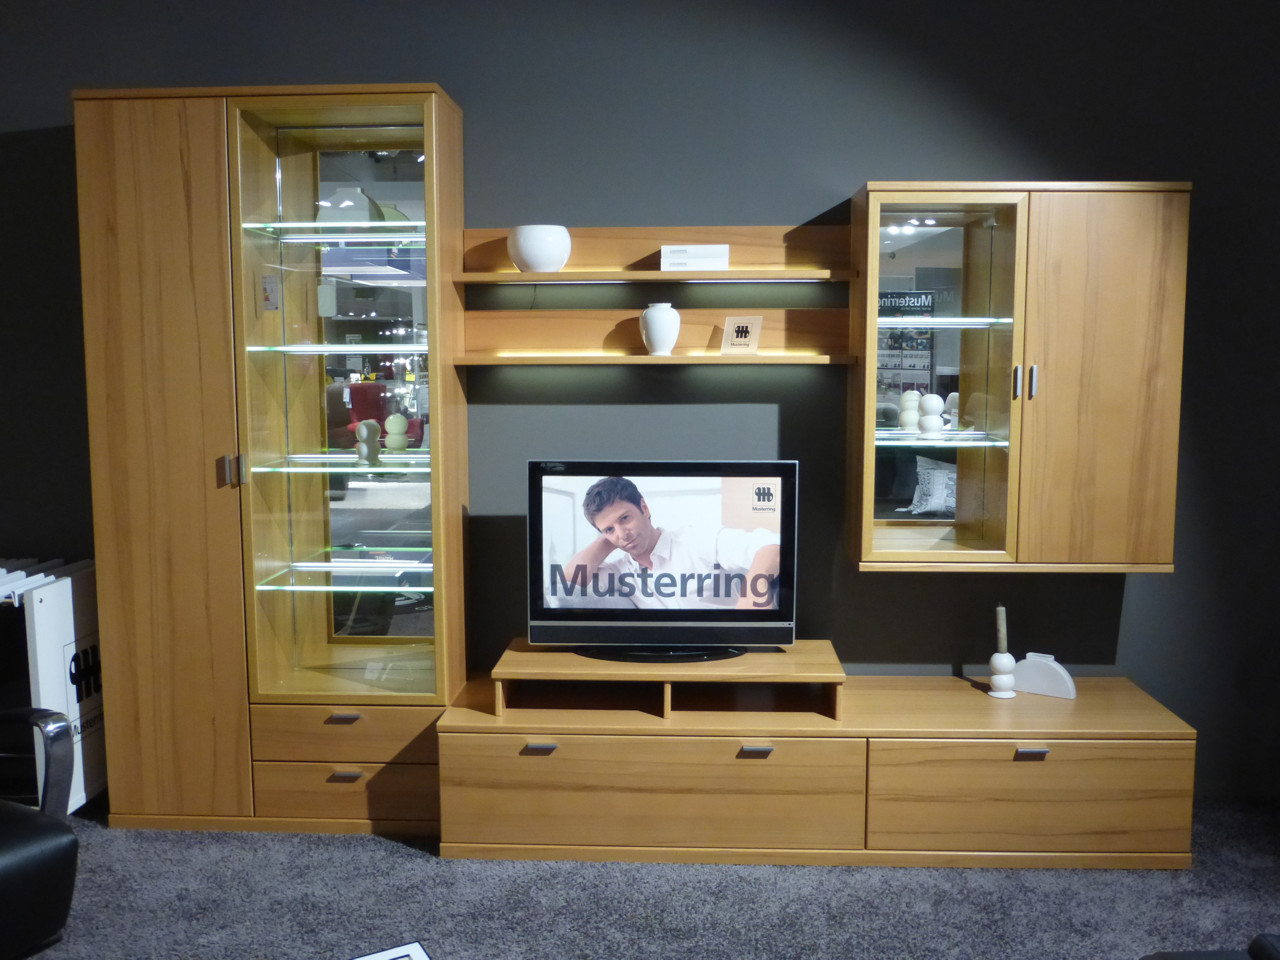 musterring wohnwand kira system h mel. Black Bedroom Furniture Sets. Home Design Ideas